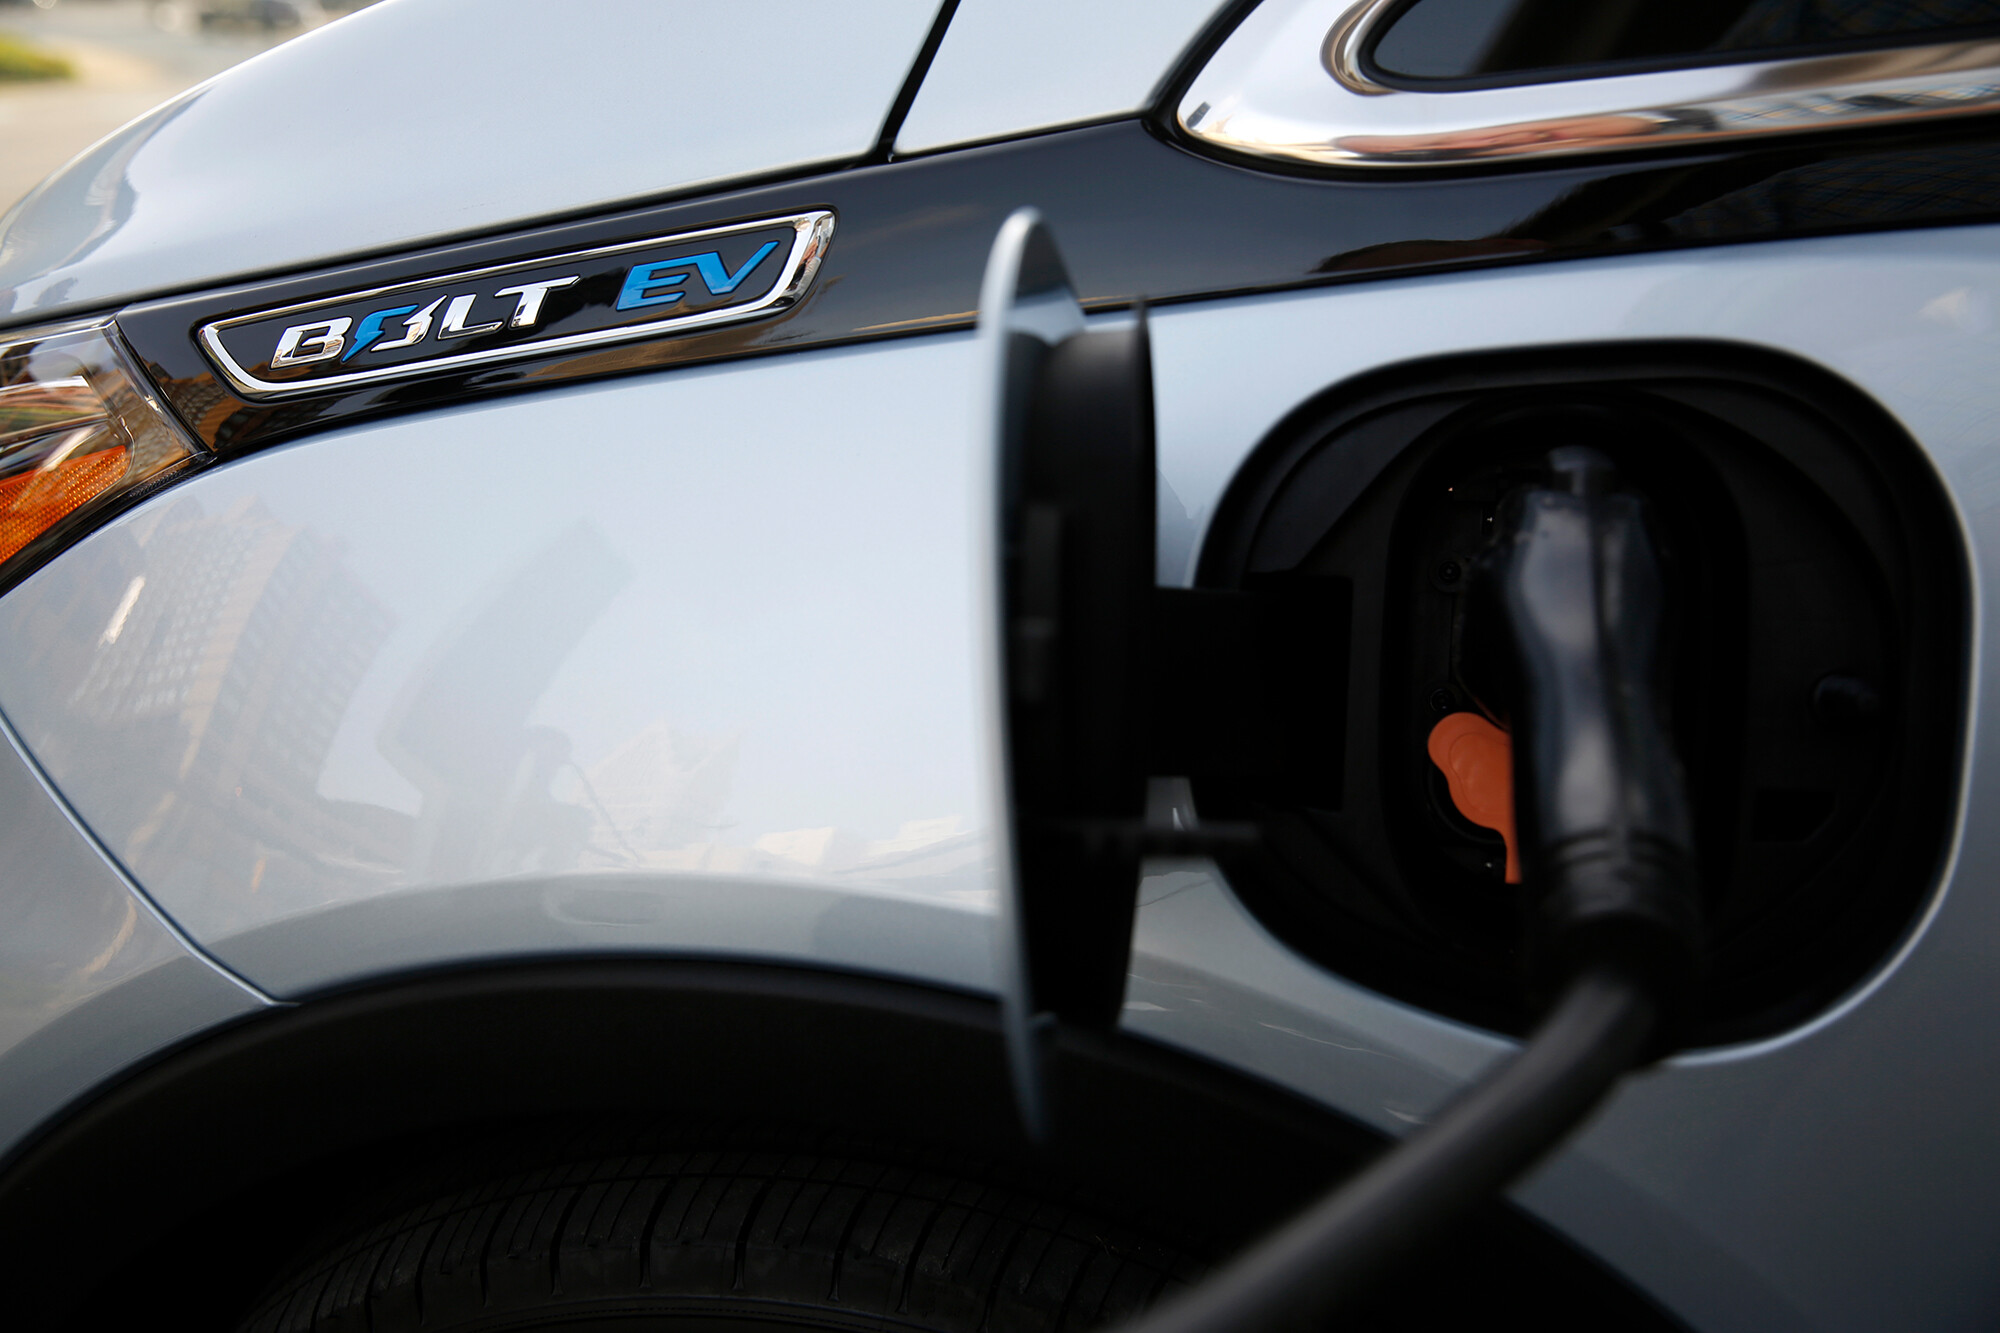 LG to pay GM $1.9 billion to cover cost of Bolt recall for battery fires